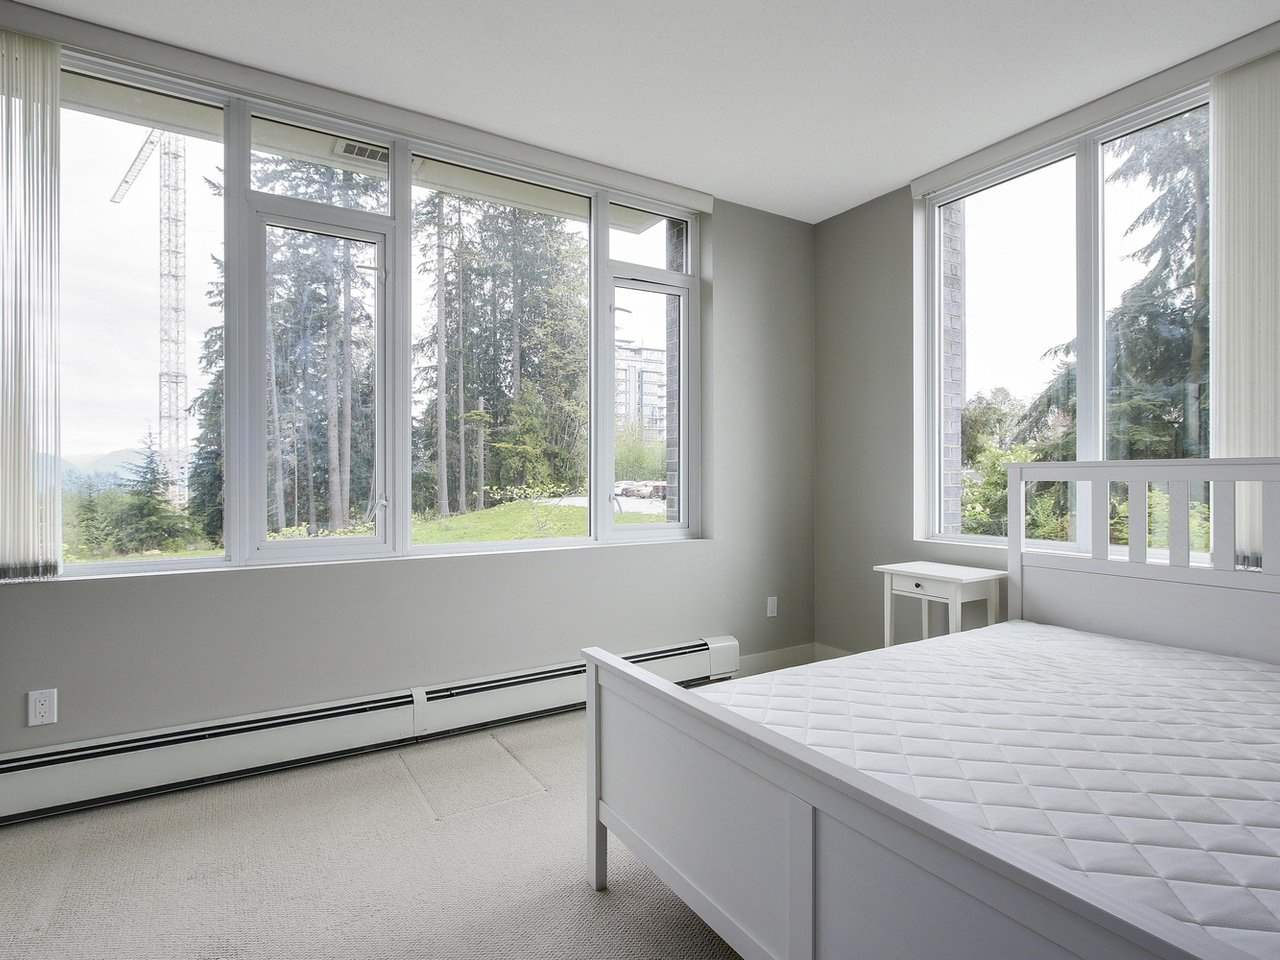 "Photo 12: 112 9025 HIGHLAND Court in Burnaby: Simon Fraser Univer. Townhouse for sale in ""HIGHLAND HOUSE"" (Burnaby North)  : MLS® # R2163984"